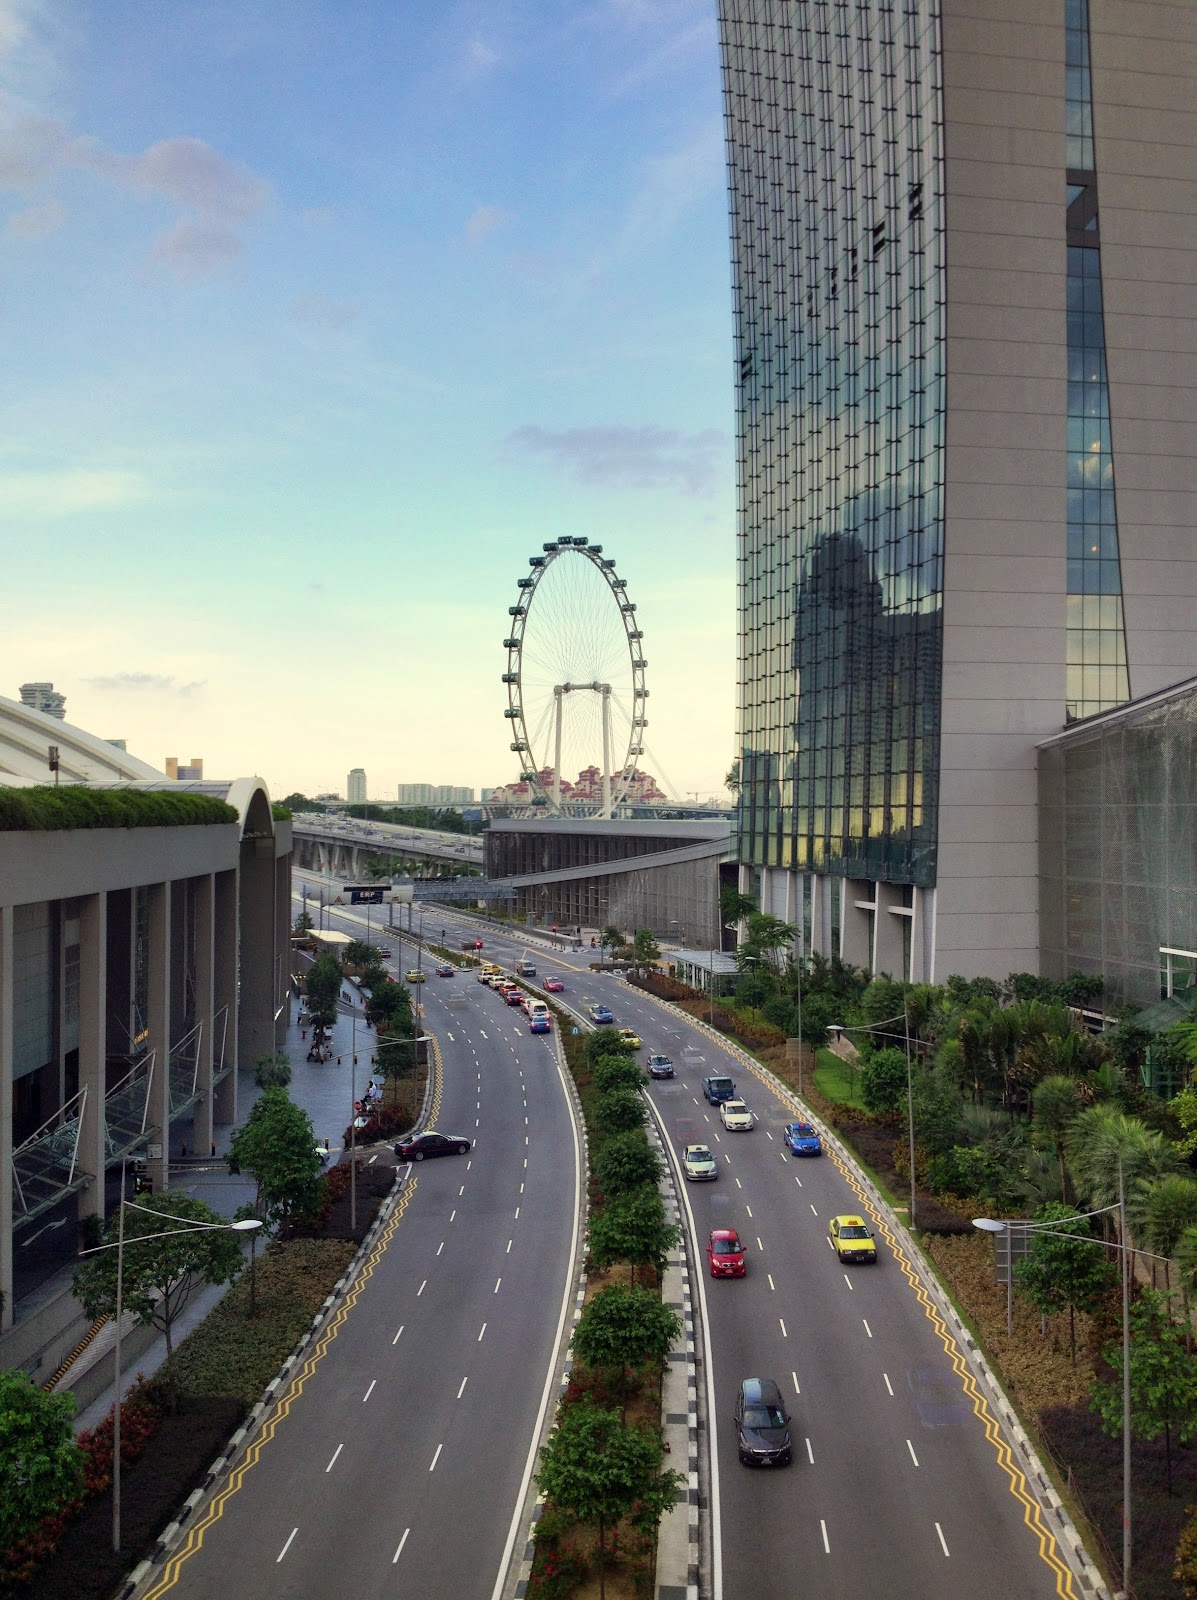 walking along the way from marina bay sands fourth level to the gardens by the bay give a best experience of the atmosphere of both city and garden mixed